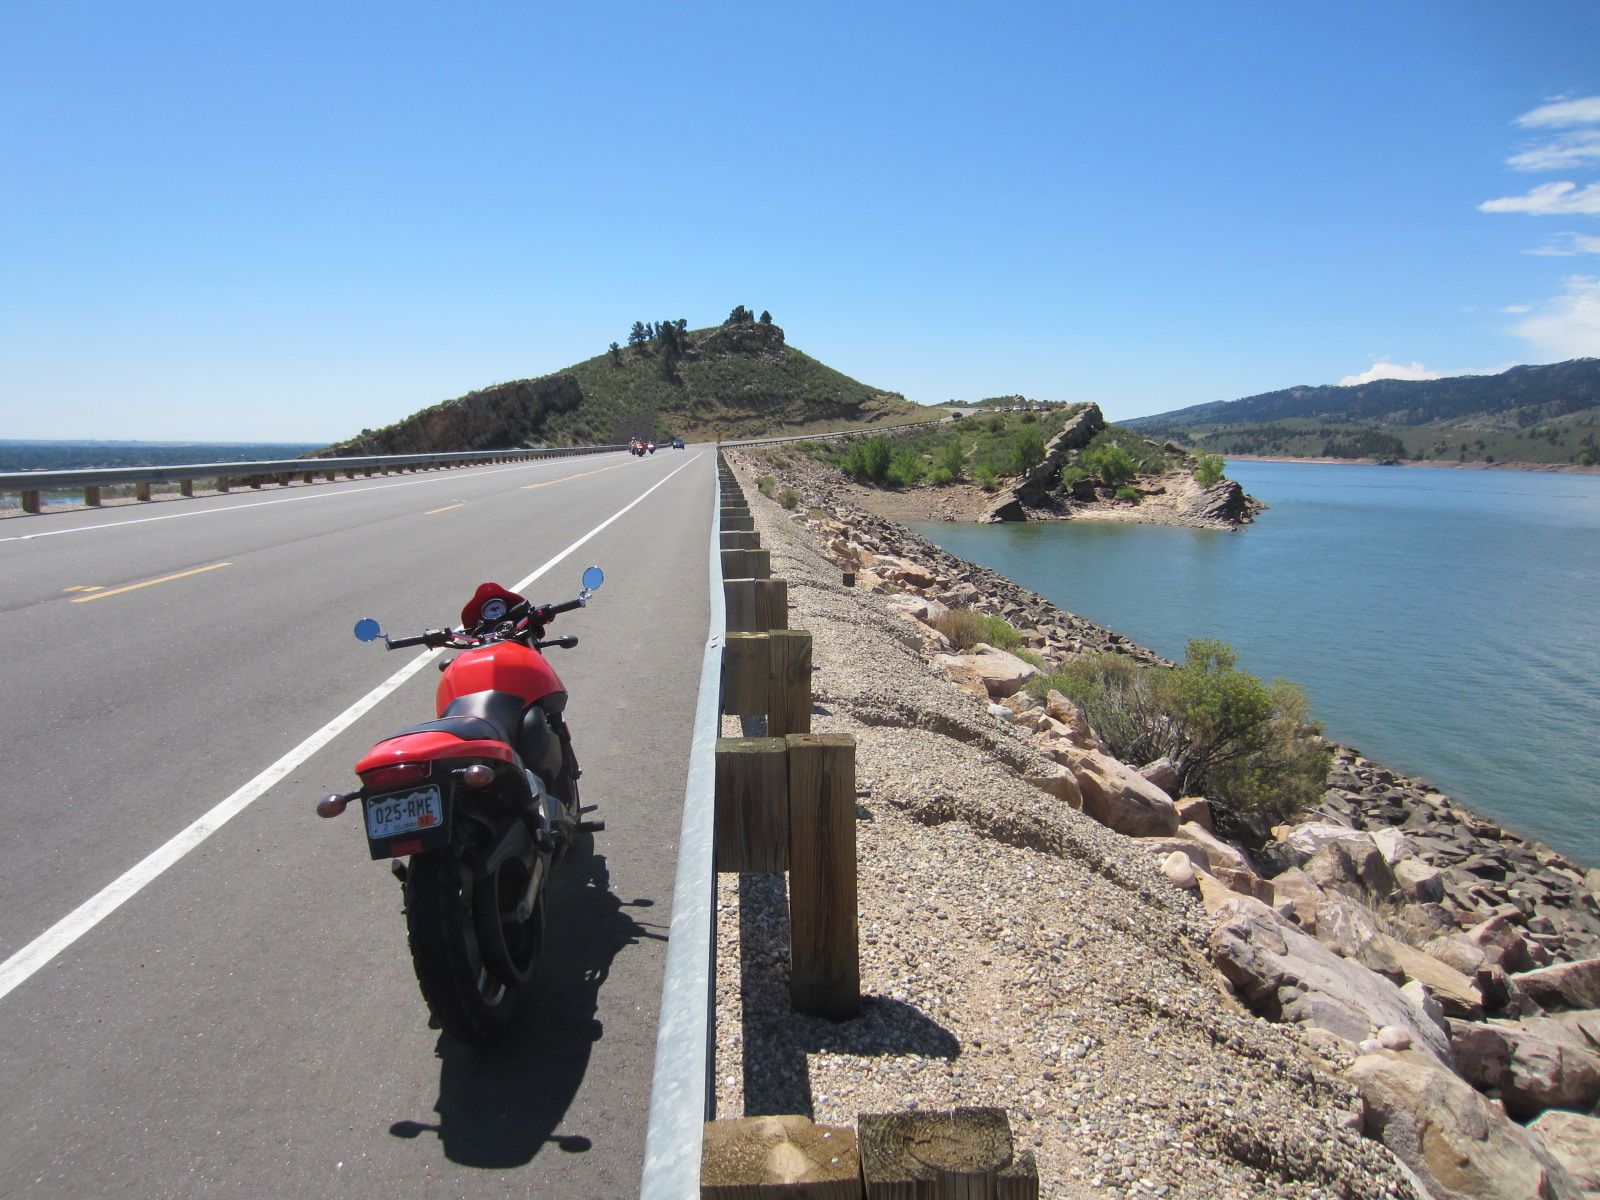 red Buell motorcycle by Horsetooth Reservoir